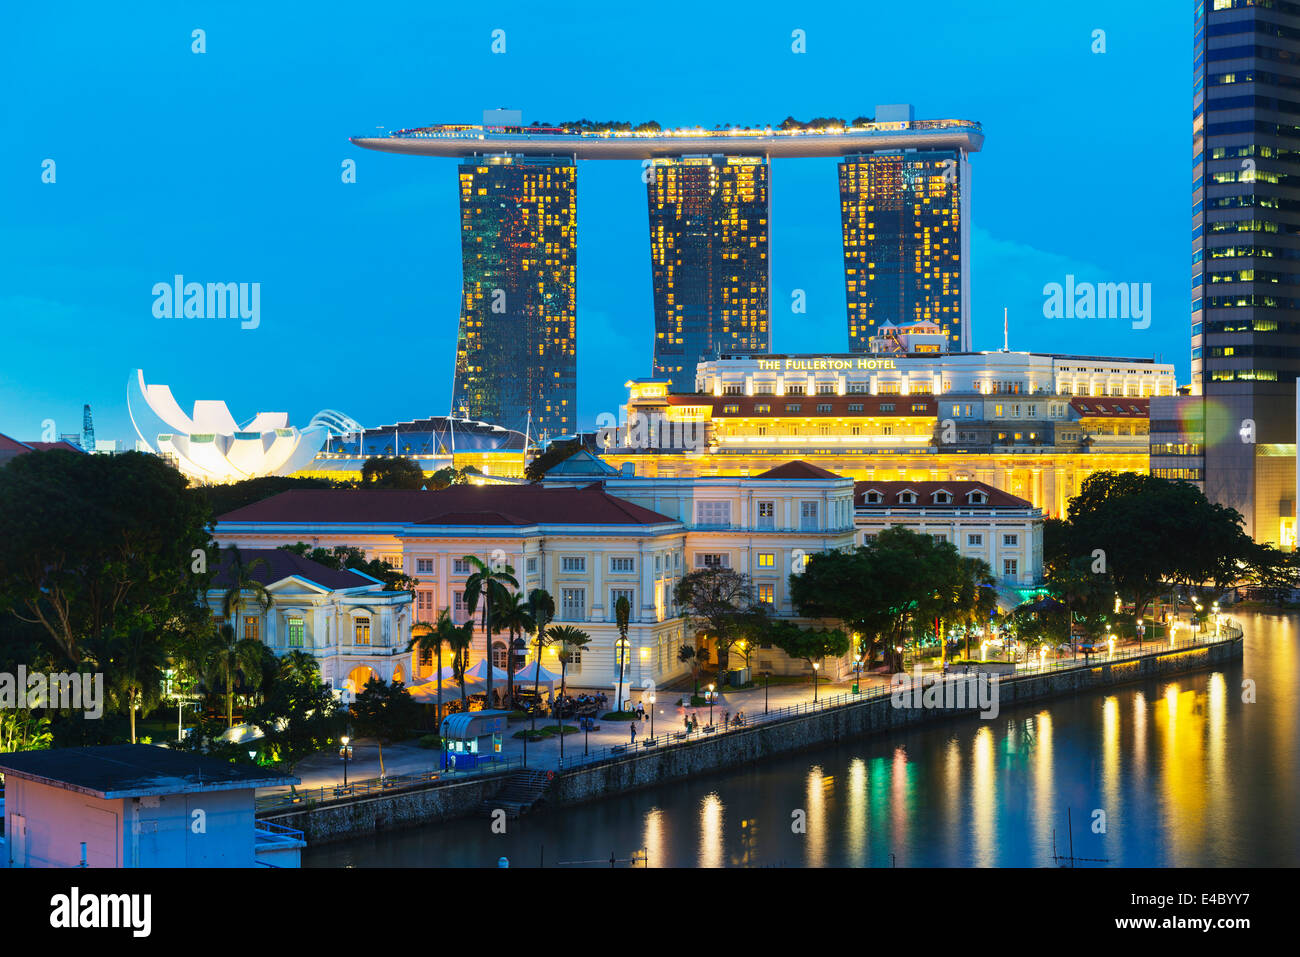 South East Asia, Singapore, Marina Bay Sands Hotel and Fullerton Hotel - Stock Image